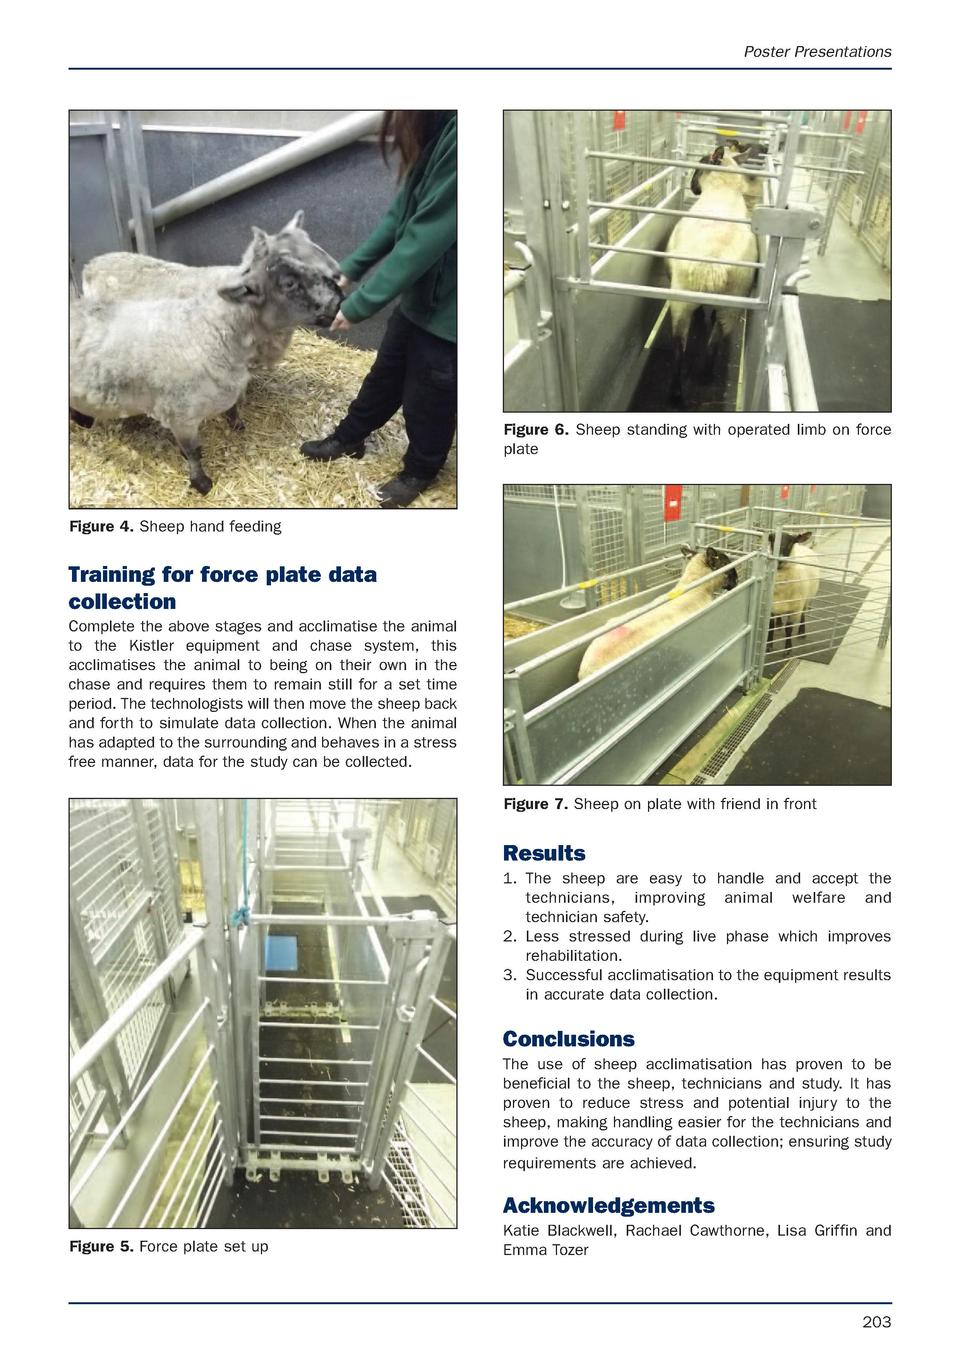 Poster Presentations  Figure 6. Sheep standing with operated limb on force plate  Figure 4. Sheep hand feeding  Training f...